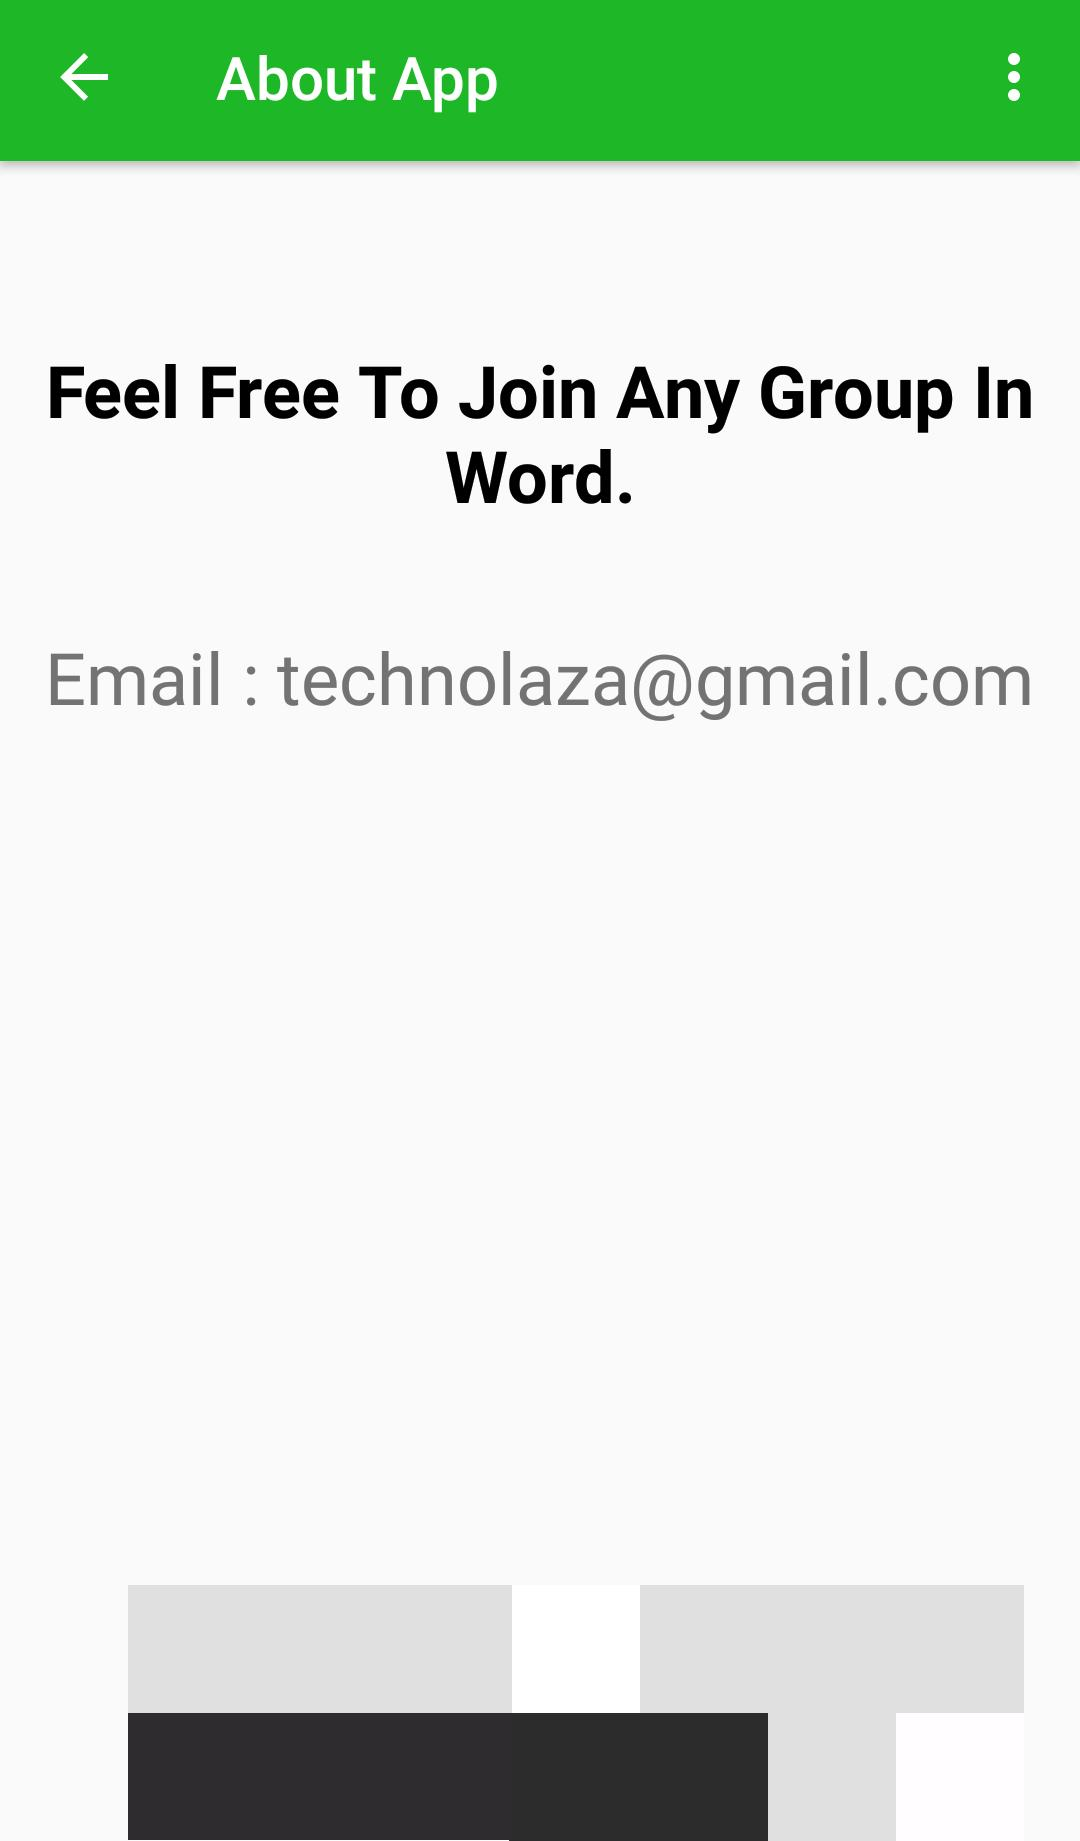 WhatsApp Group for Android - APK Download